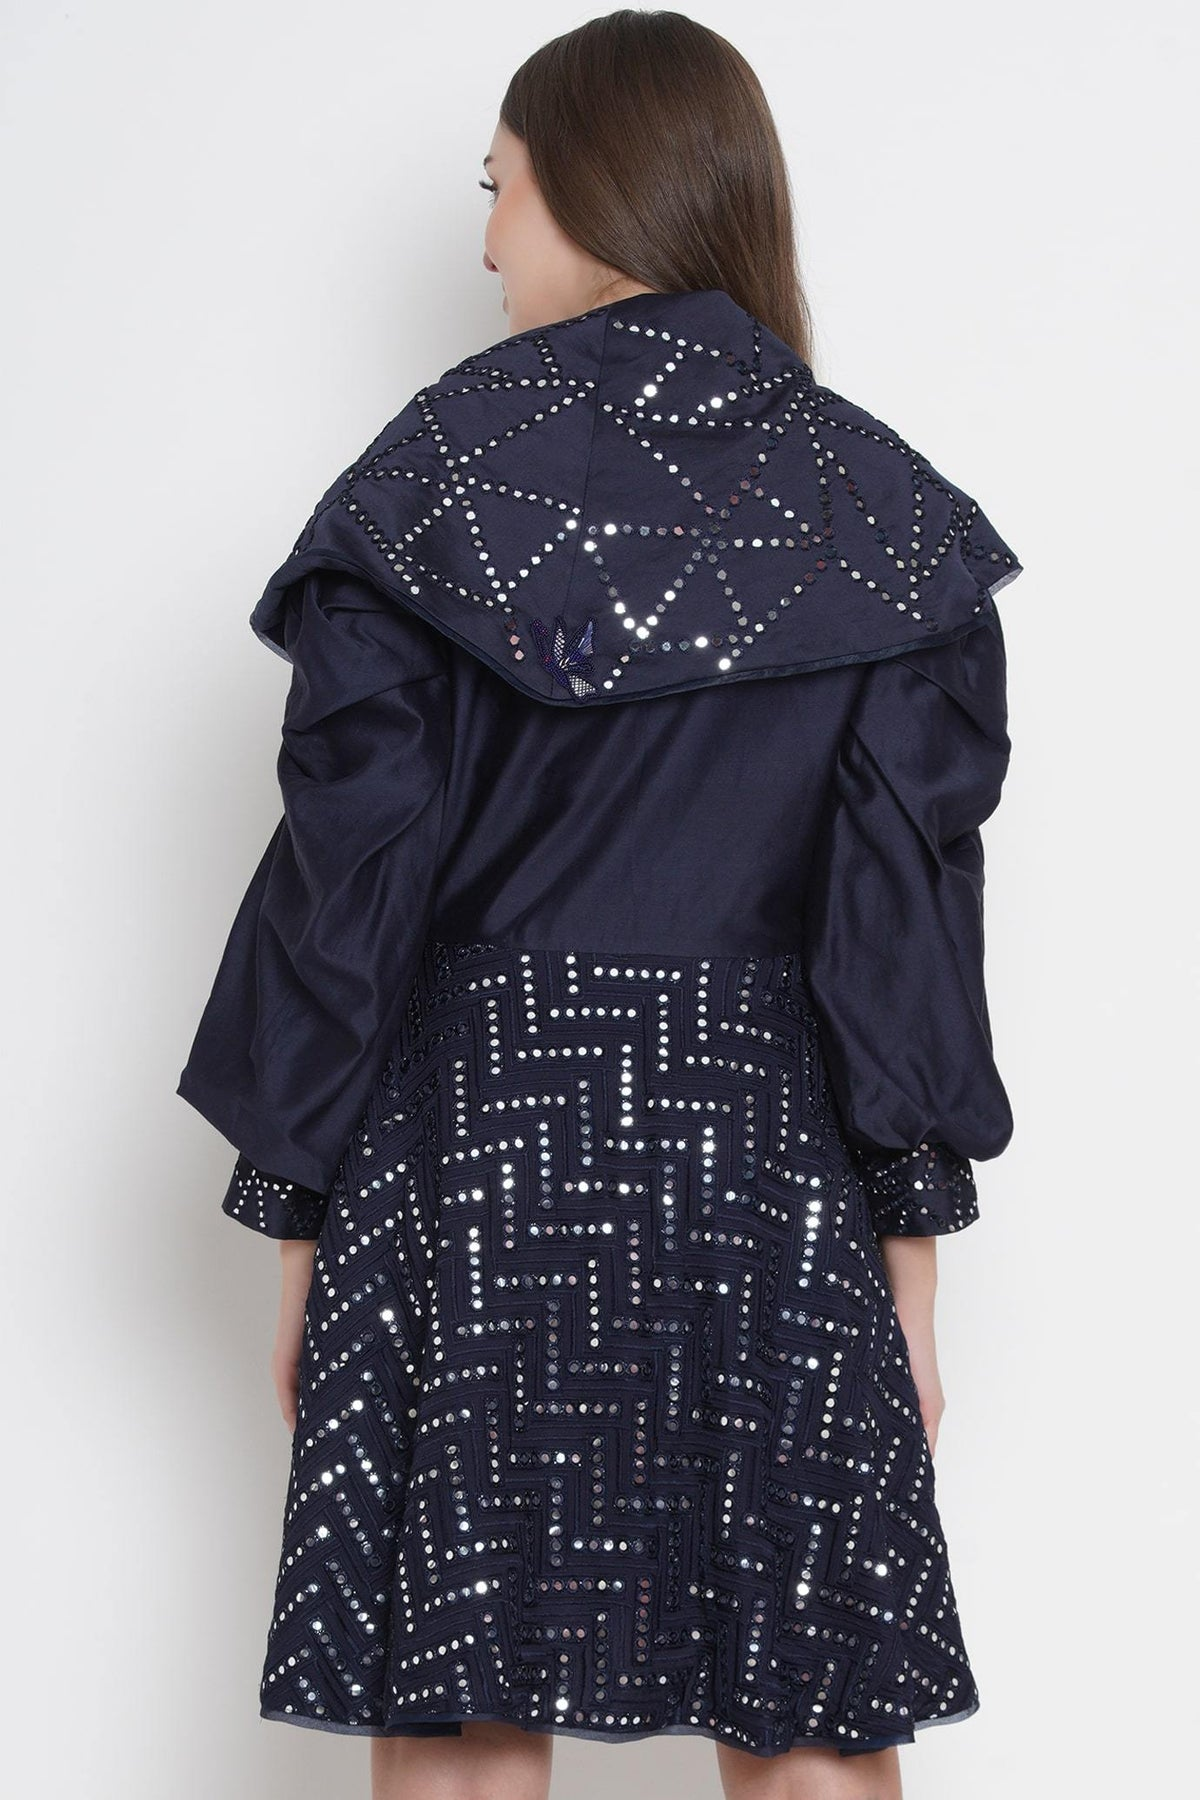 Twenty Nine Jackets Navy blue flap collar mirrorwork jackets dress